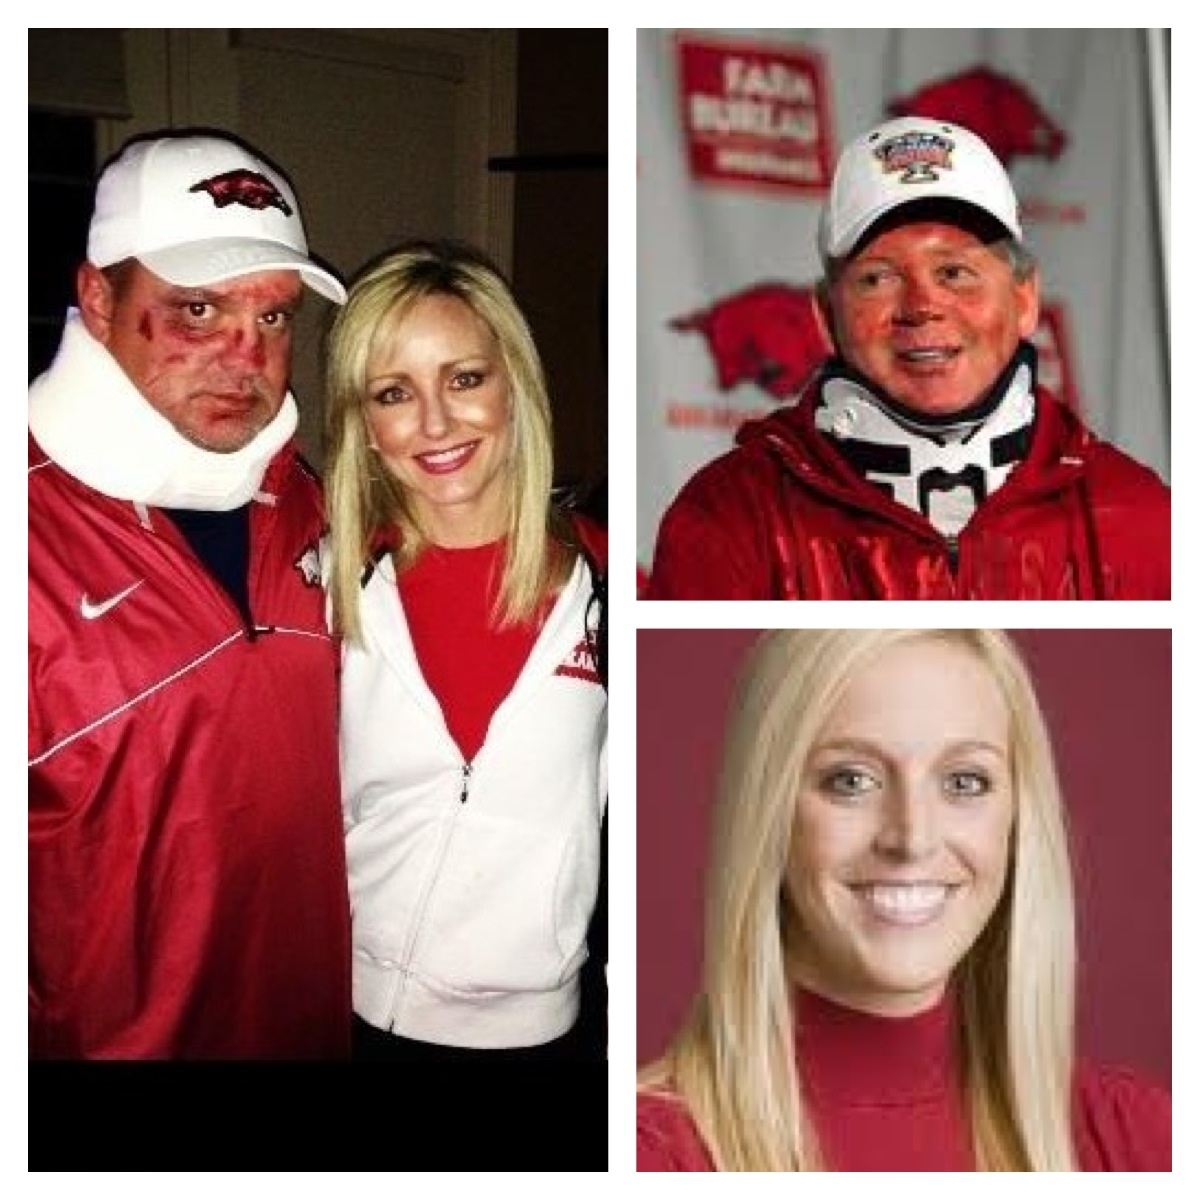 Dr David and Jennifer Furr as Bobby Petrino and Jessica Dorrell